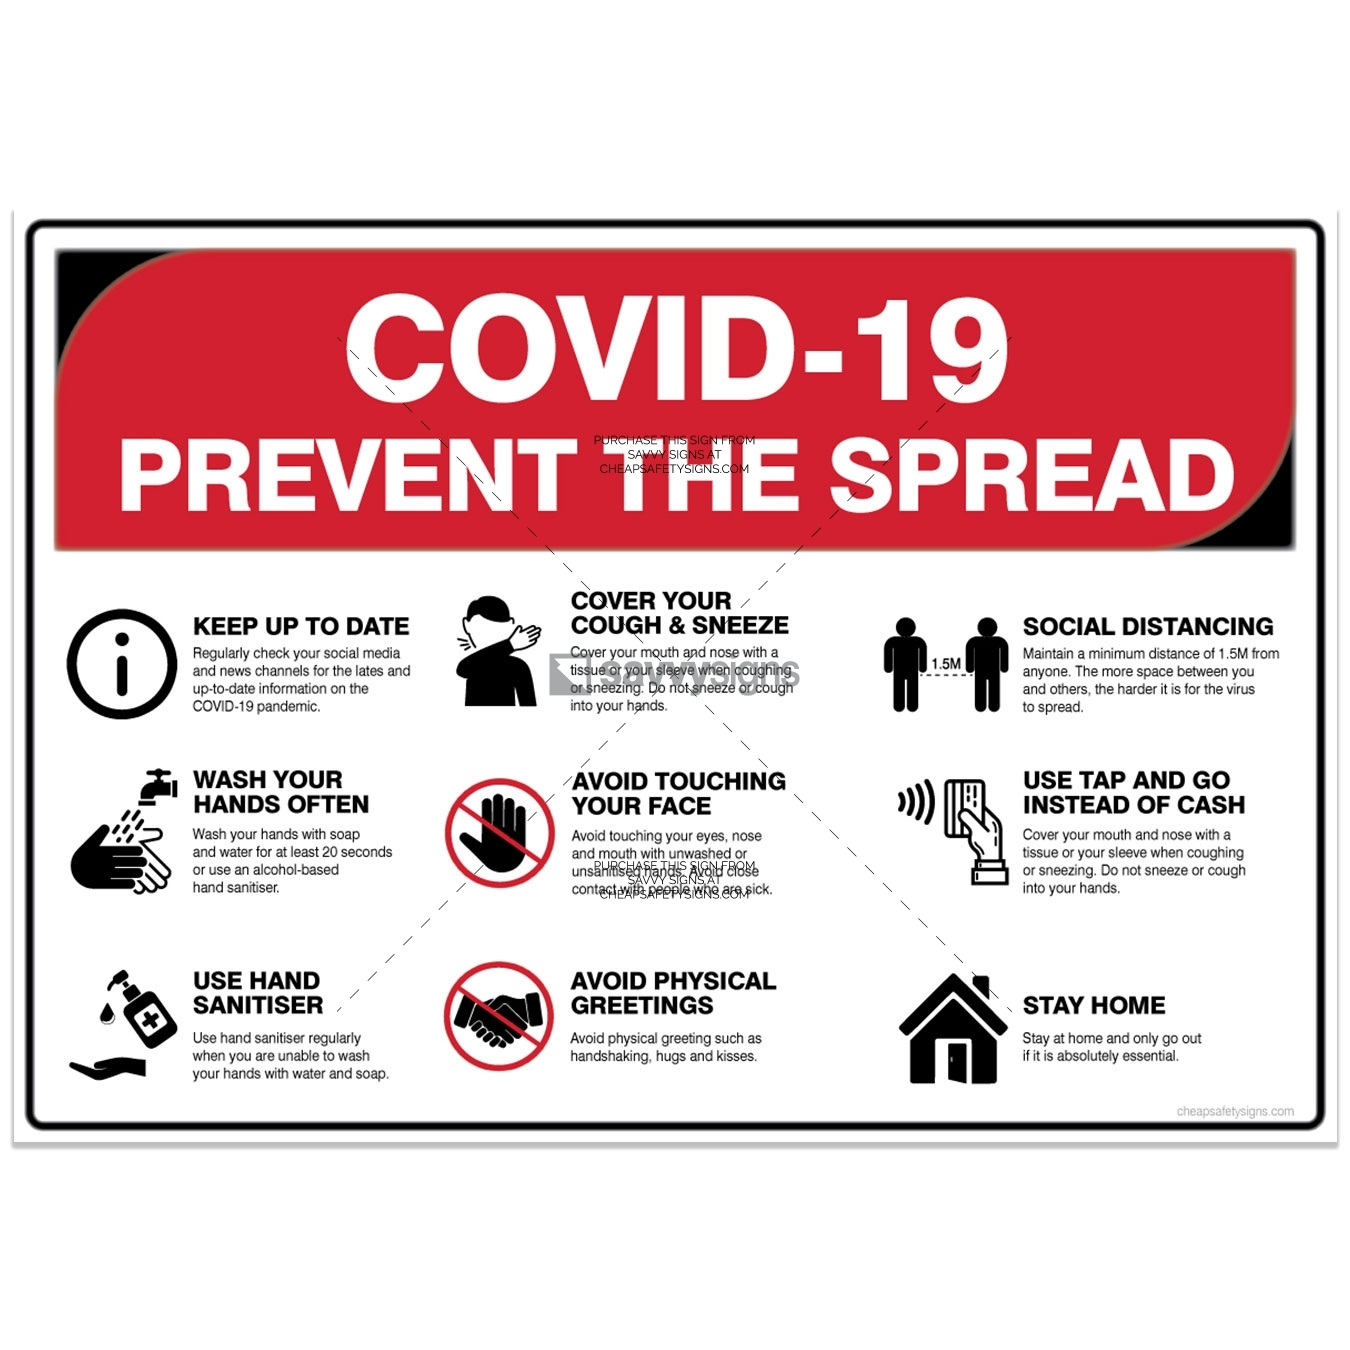 COVID-19 Safety Signs - Prevent the spread infographic poster